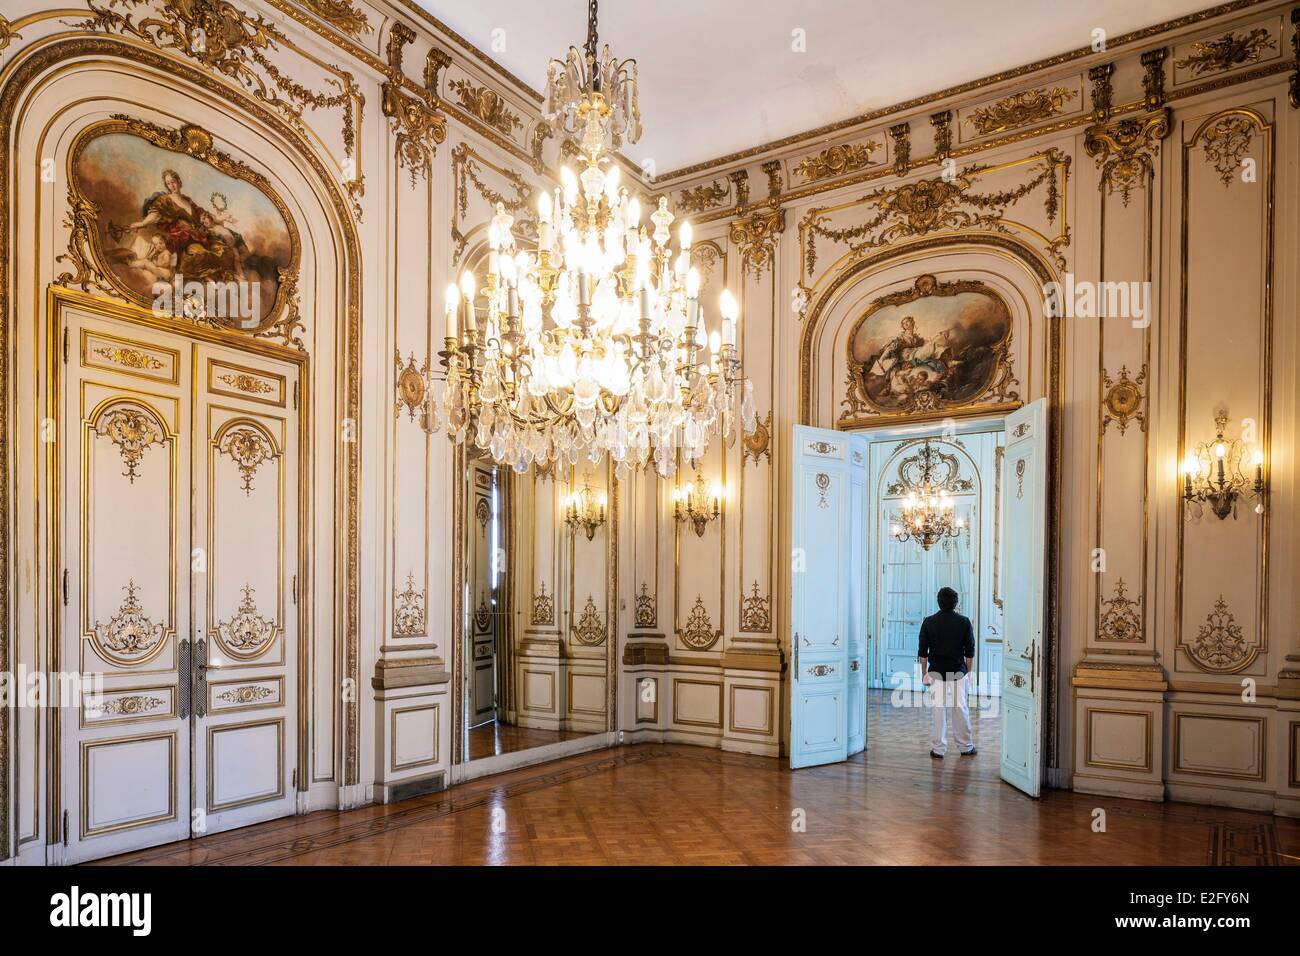 Argentina Buenos Aires Retiro district Palacio Paz 12000 m▓ residence designed by the French architect Louis-Marie - Stock Image